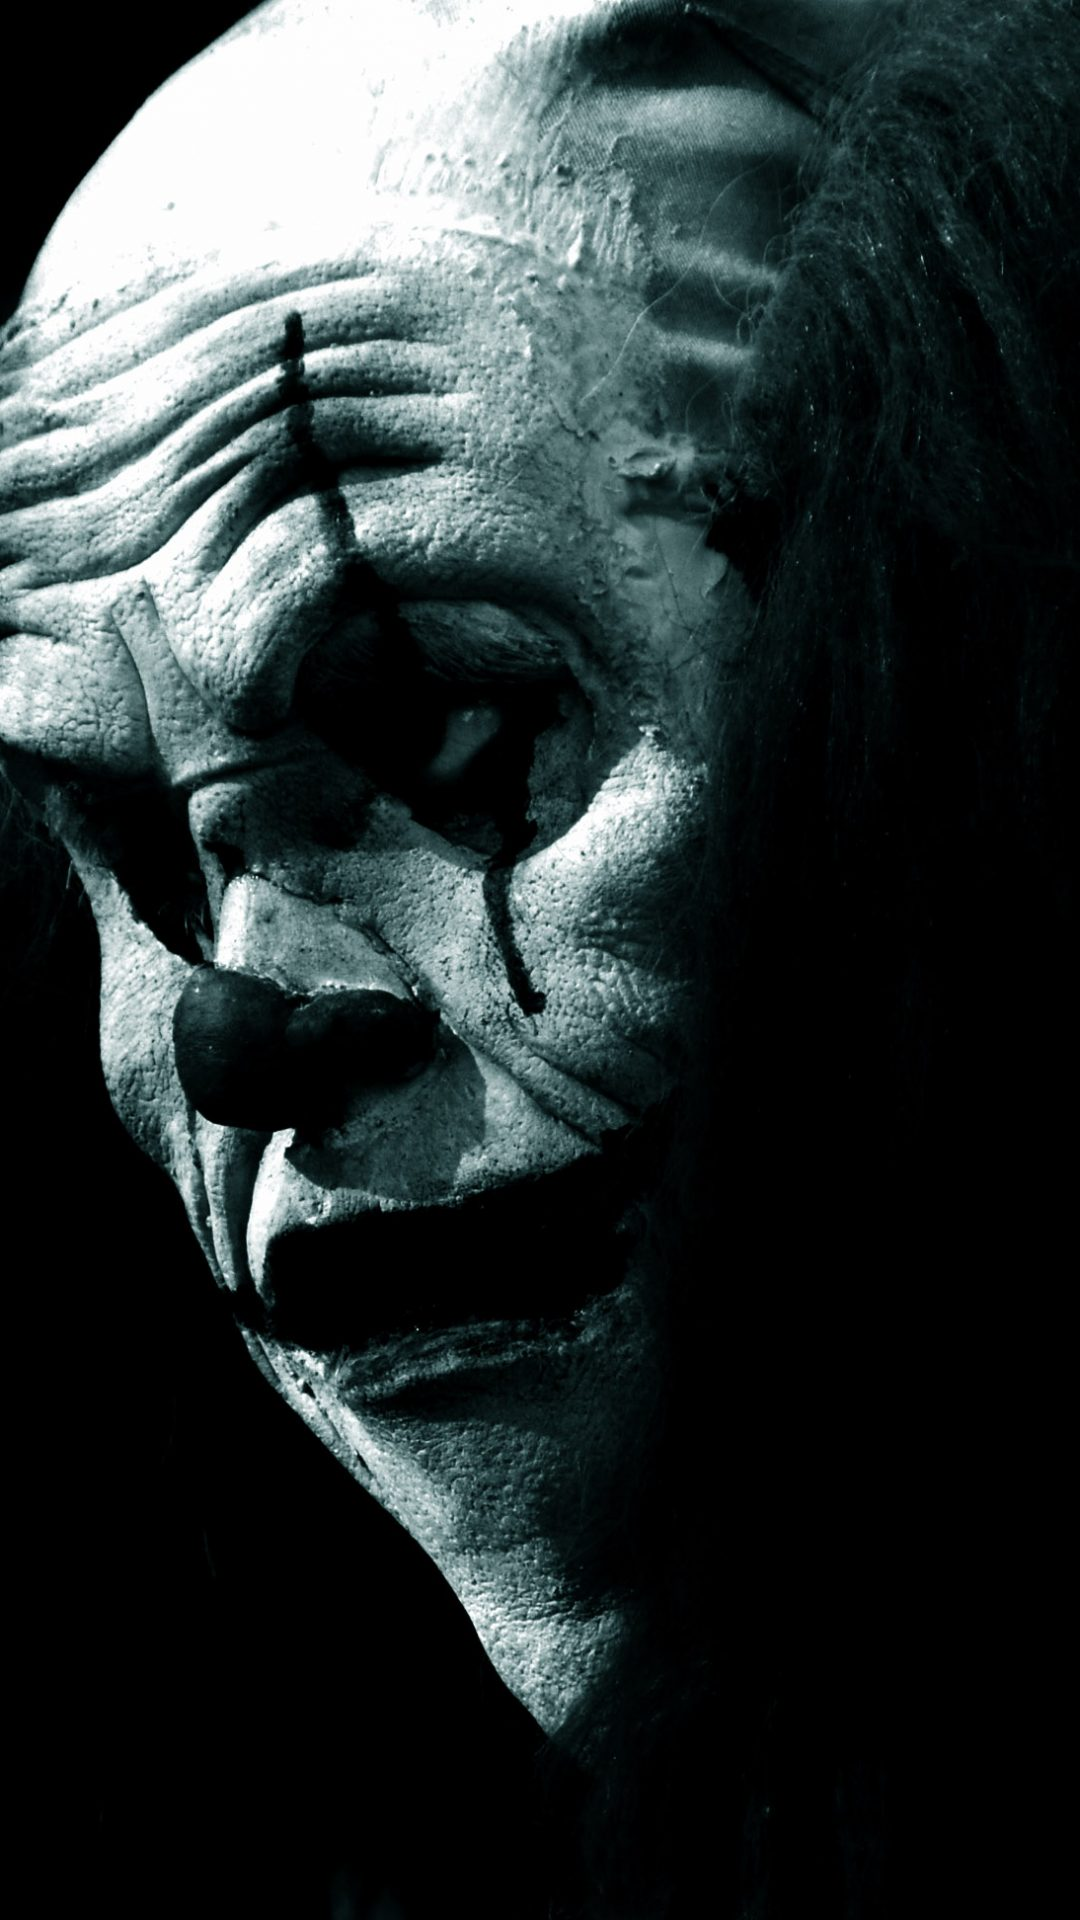 Scary clown in the dark hd wallpaper - Sad man hd wallpaper ...